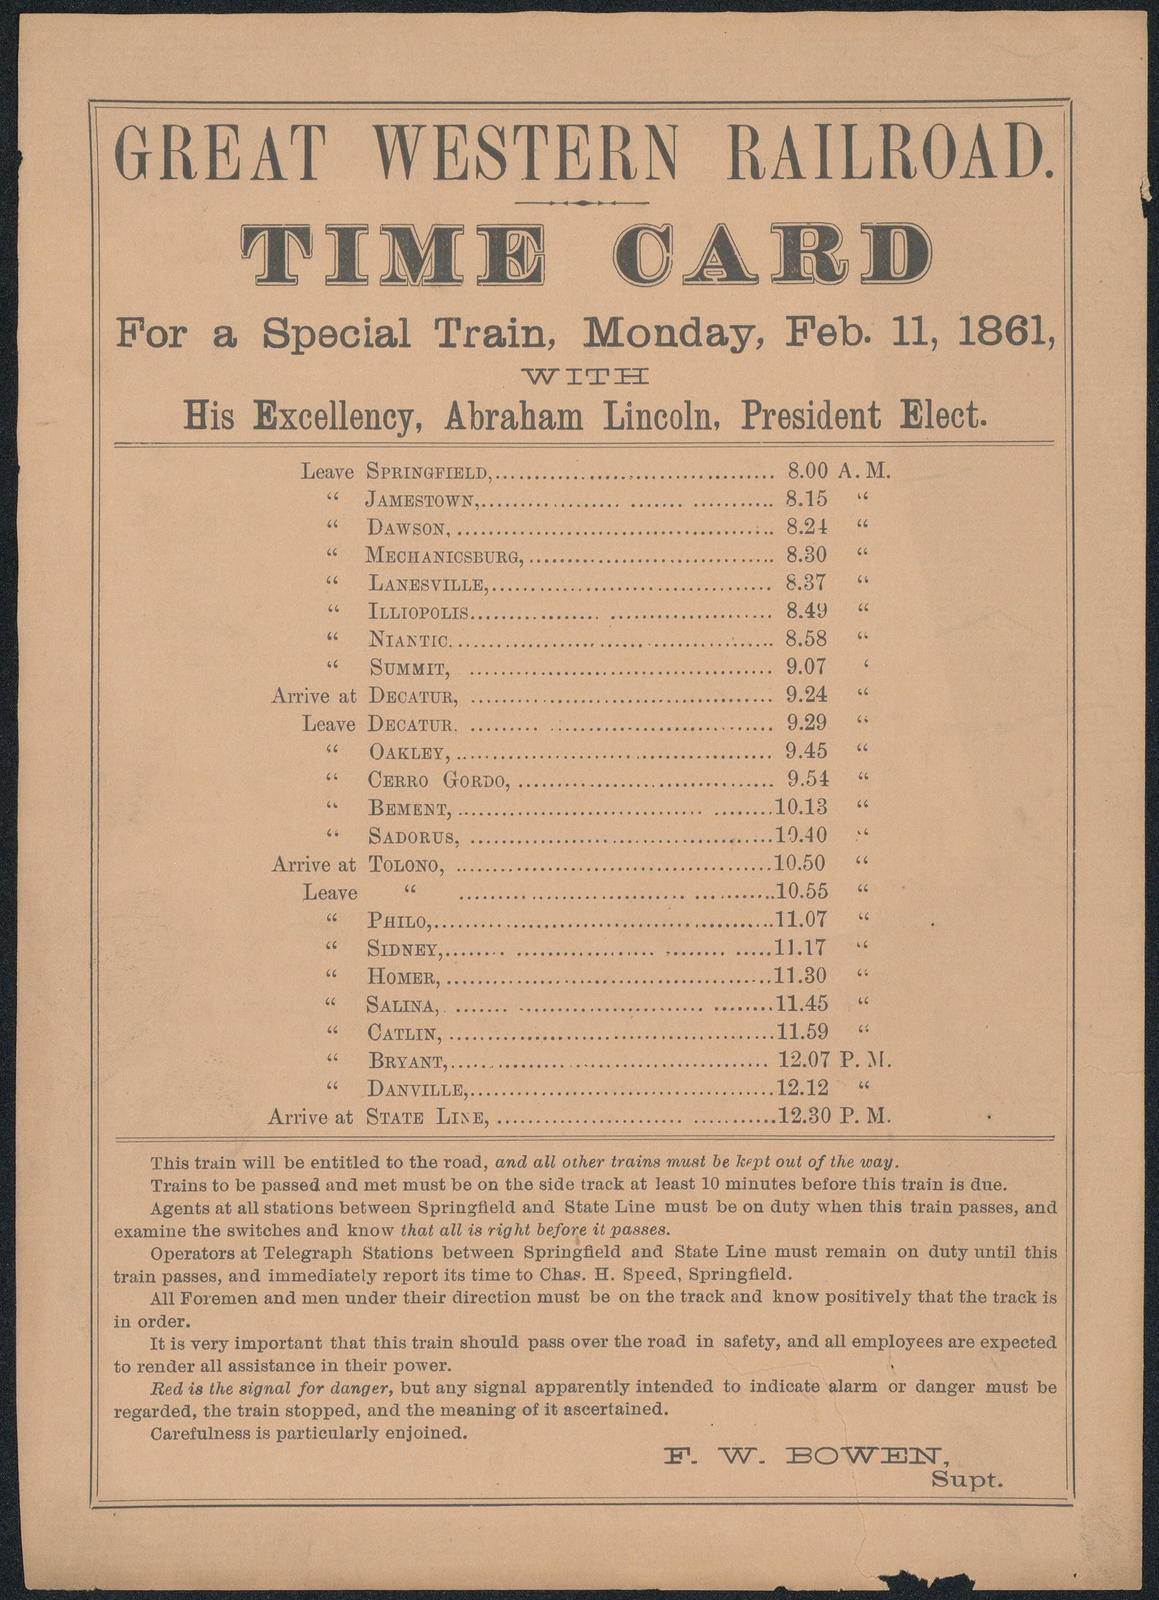 Time card for a special train, Monday February 11, 1861, His Excellency, Abraham Lincoln, President elect.